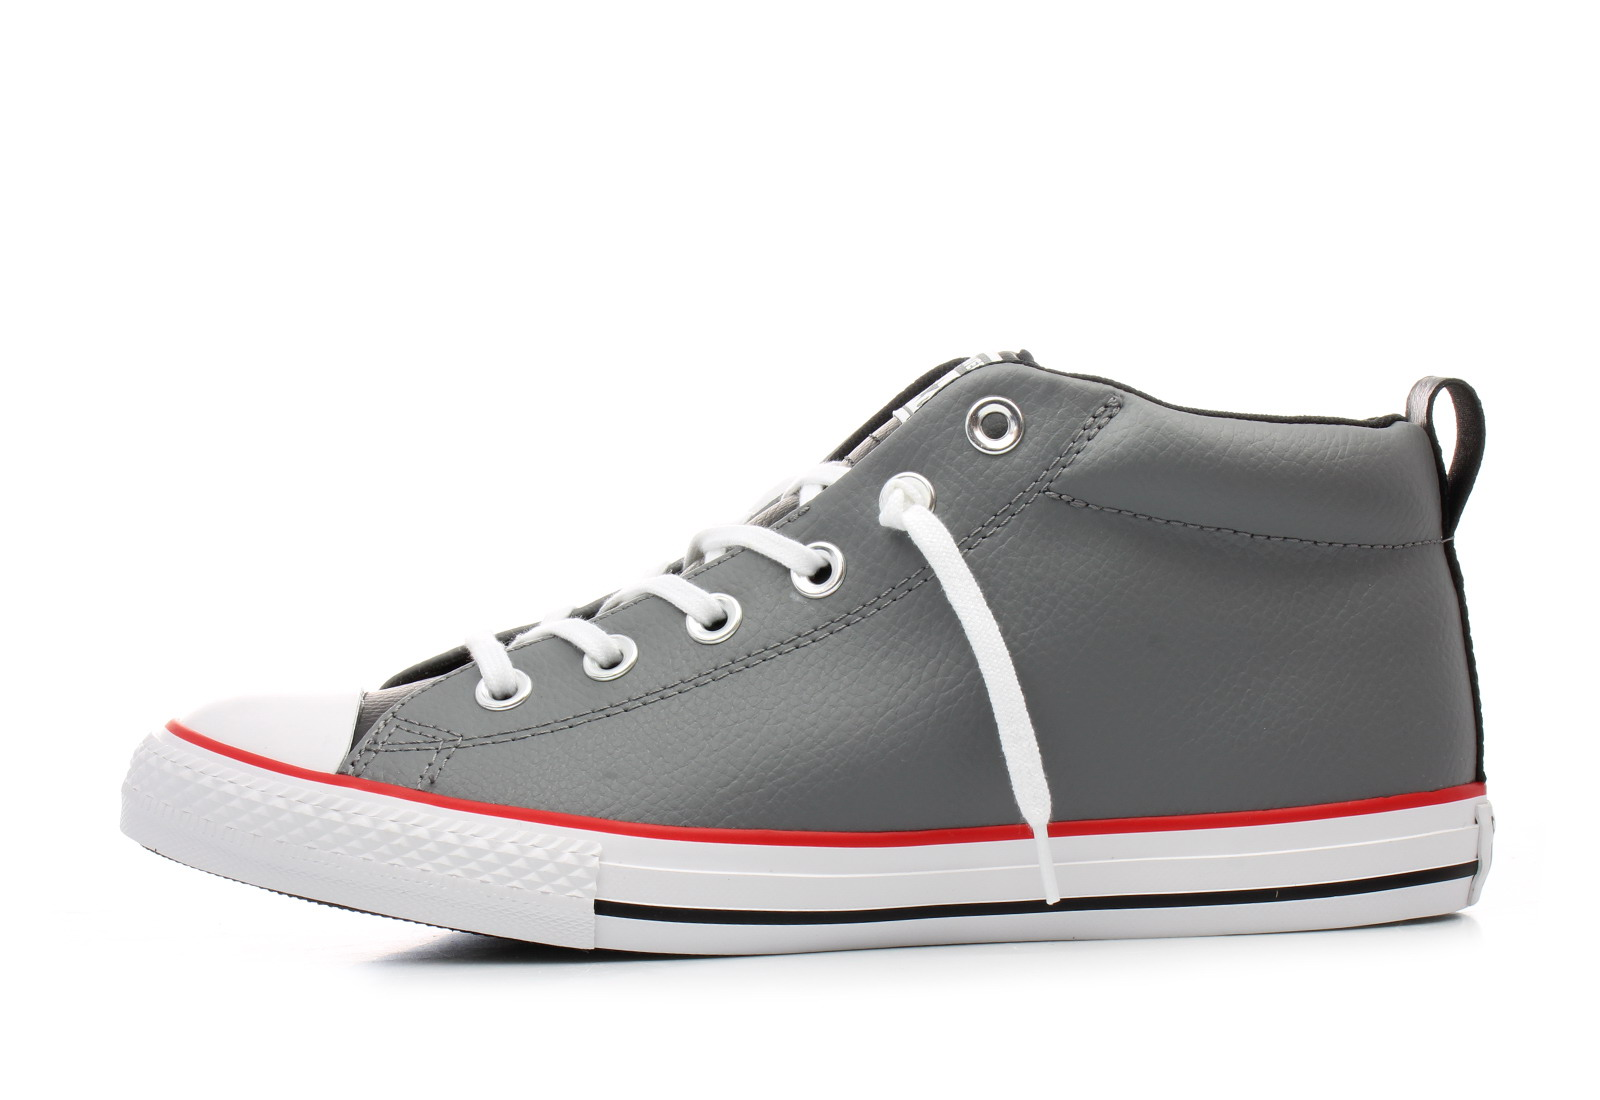 Sneakers Top All Green Static Converse And Mid Men Star Black